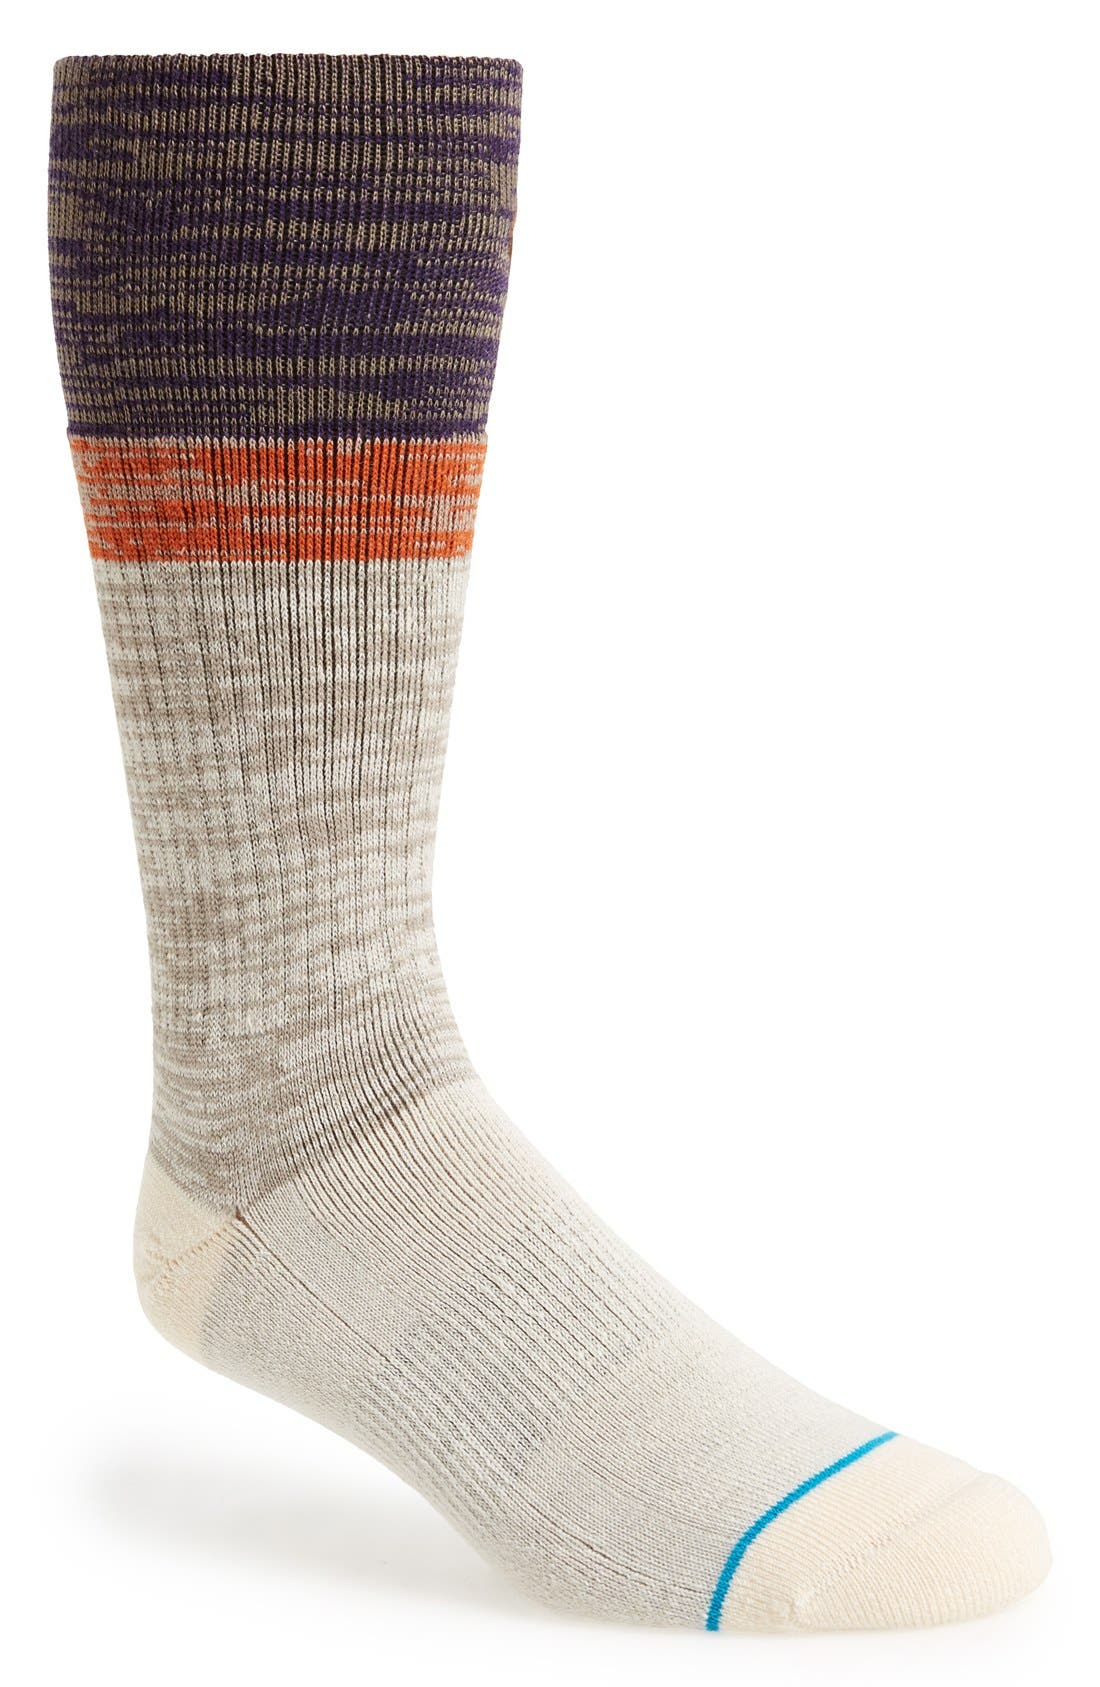 Alternate Image 1 Selected - Stance 'The Reserve - Scout' Socks